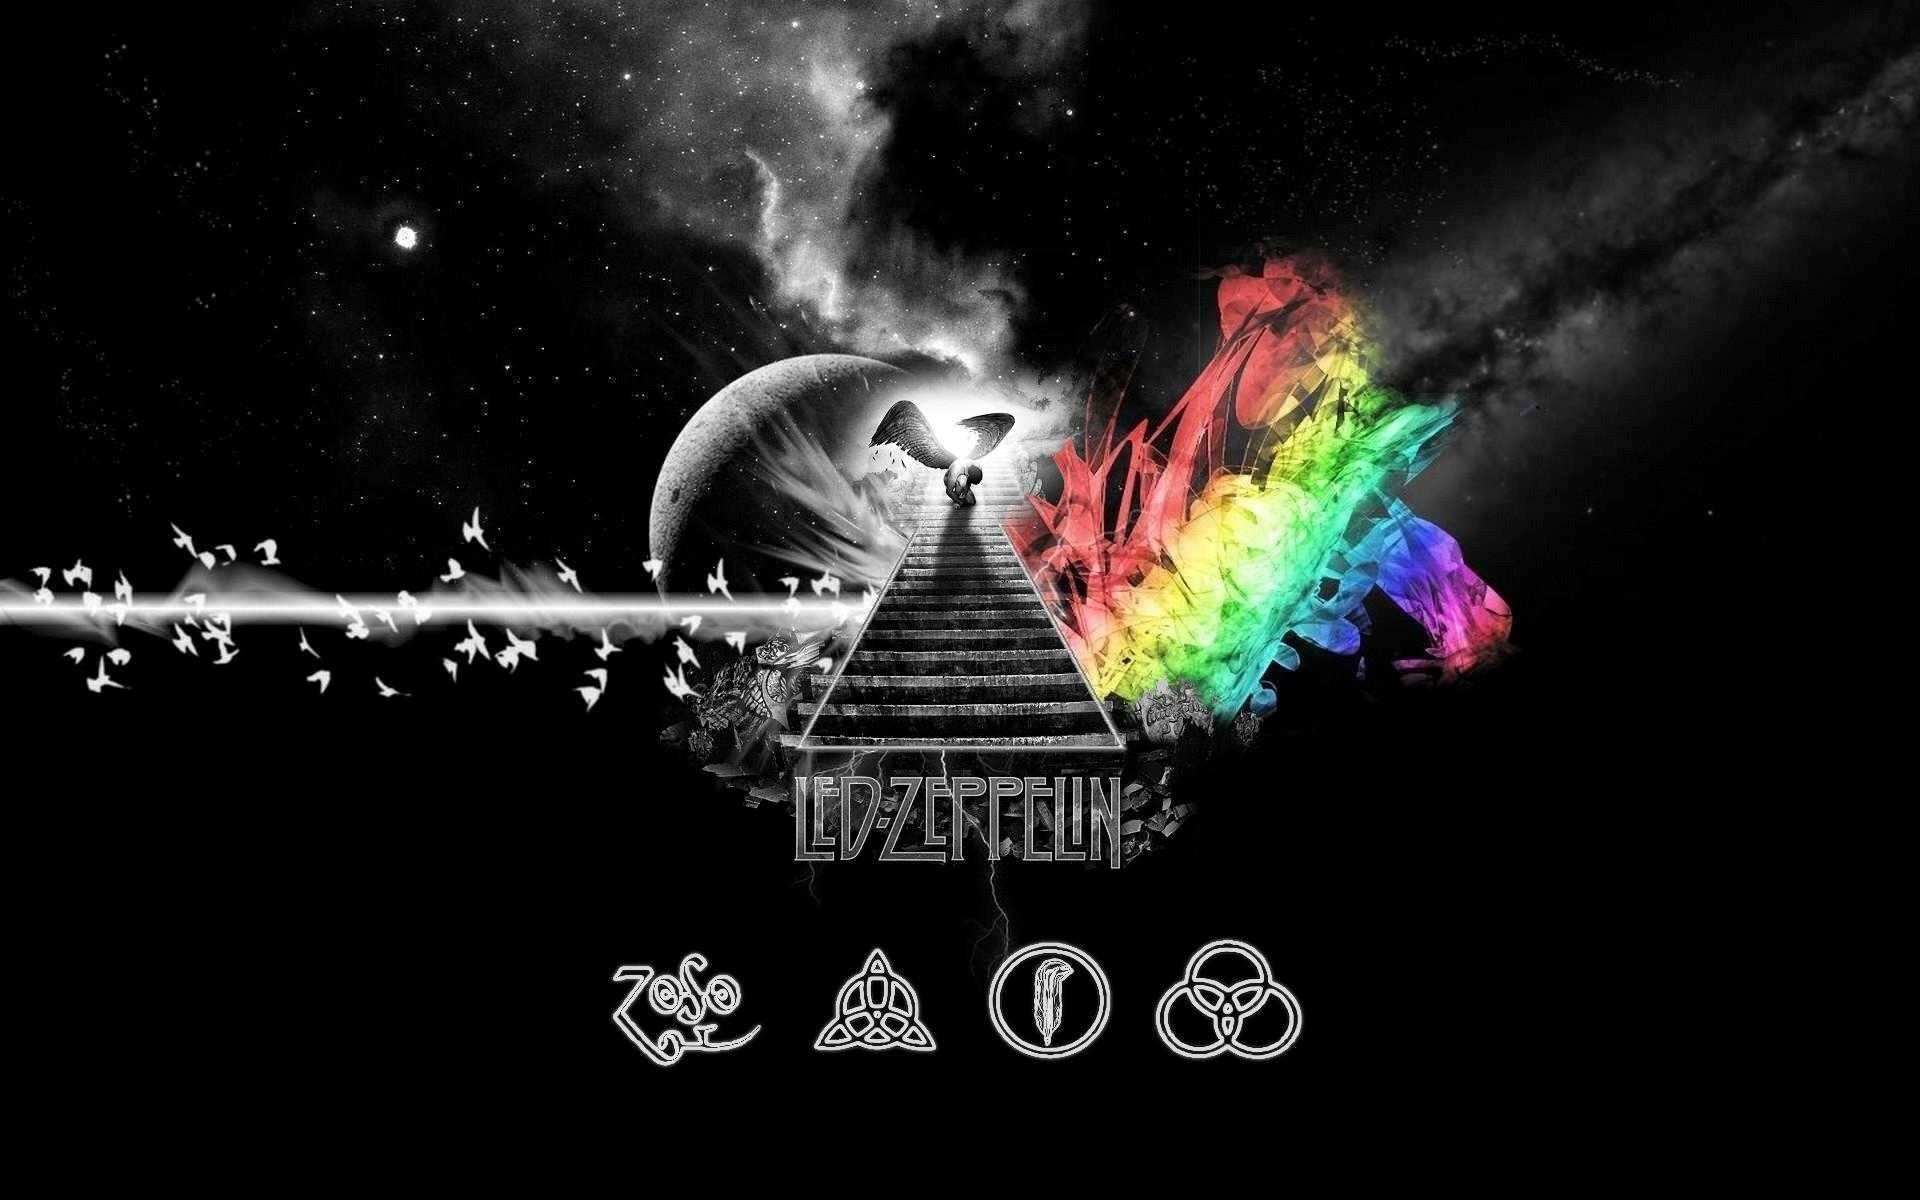 led zeppelin wallpaper computer hd backgrounds for | wallvie